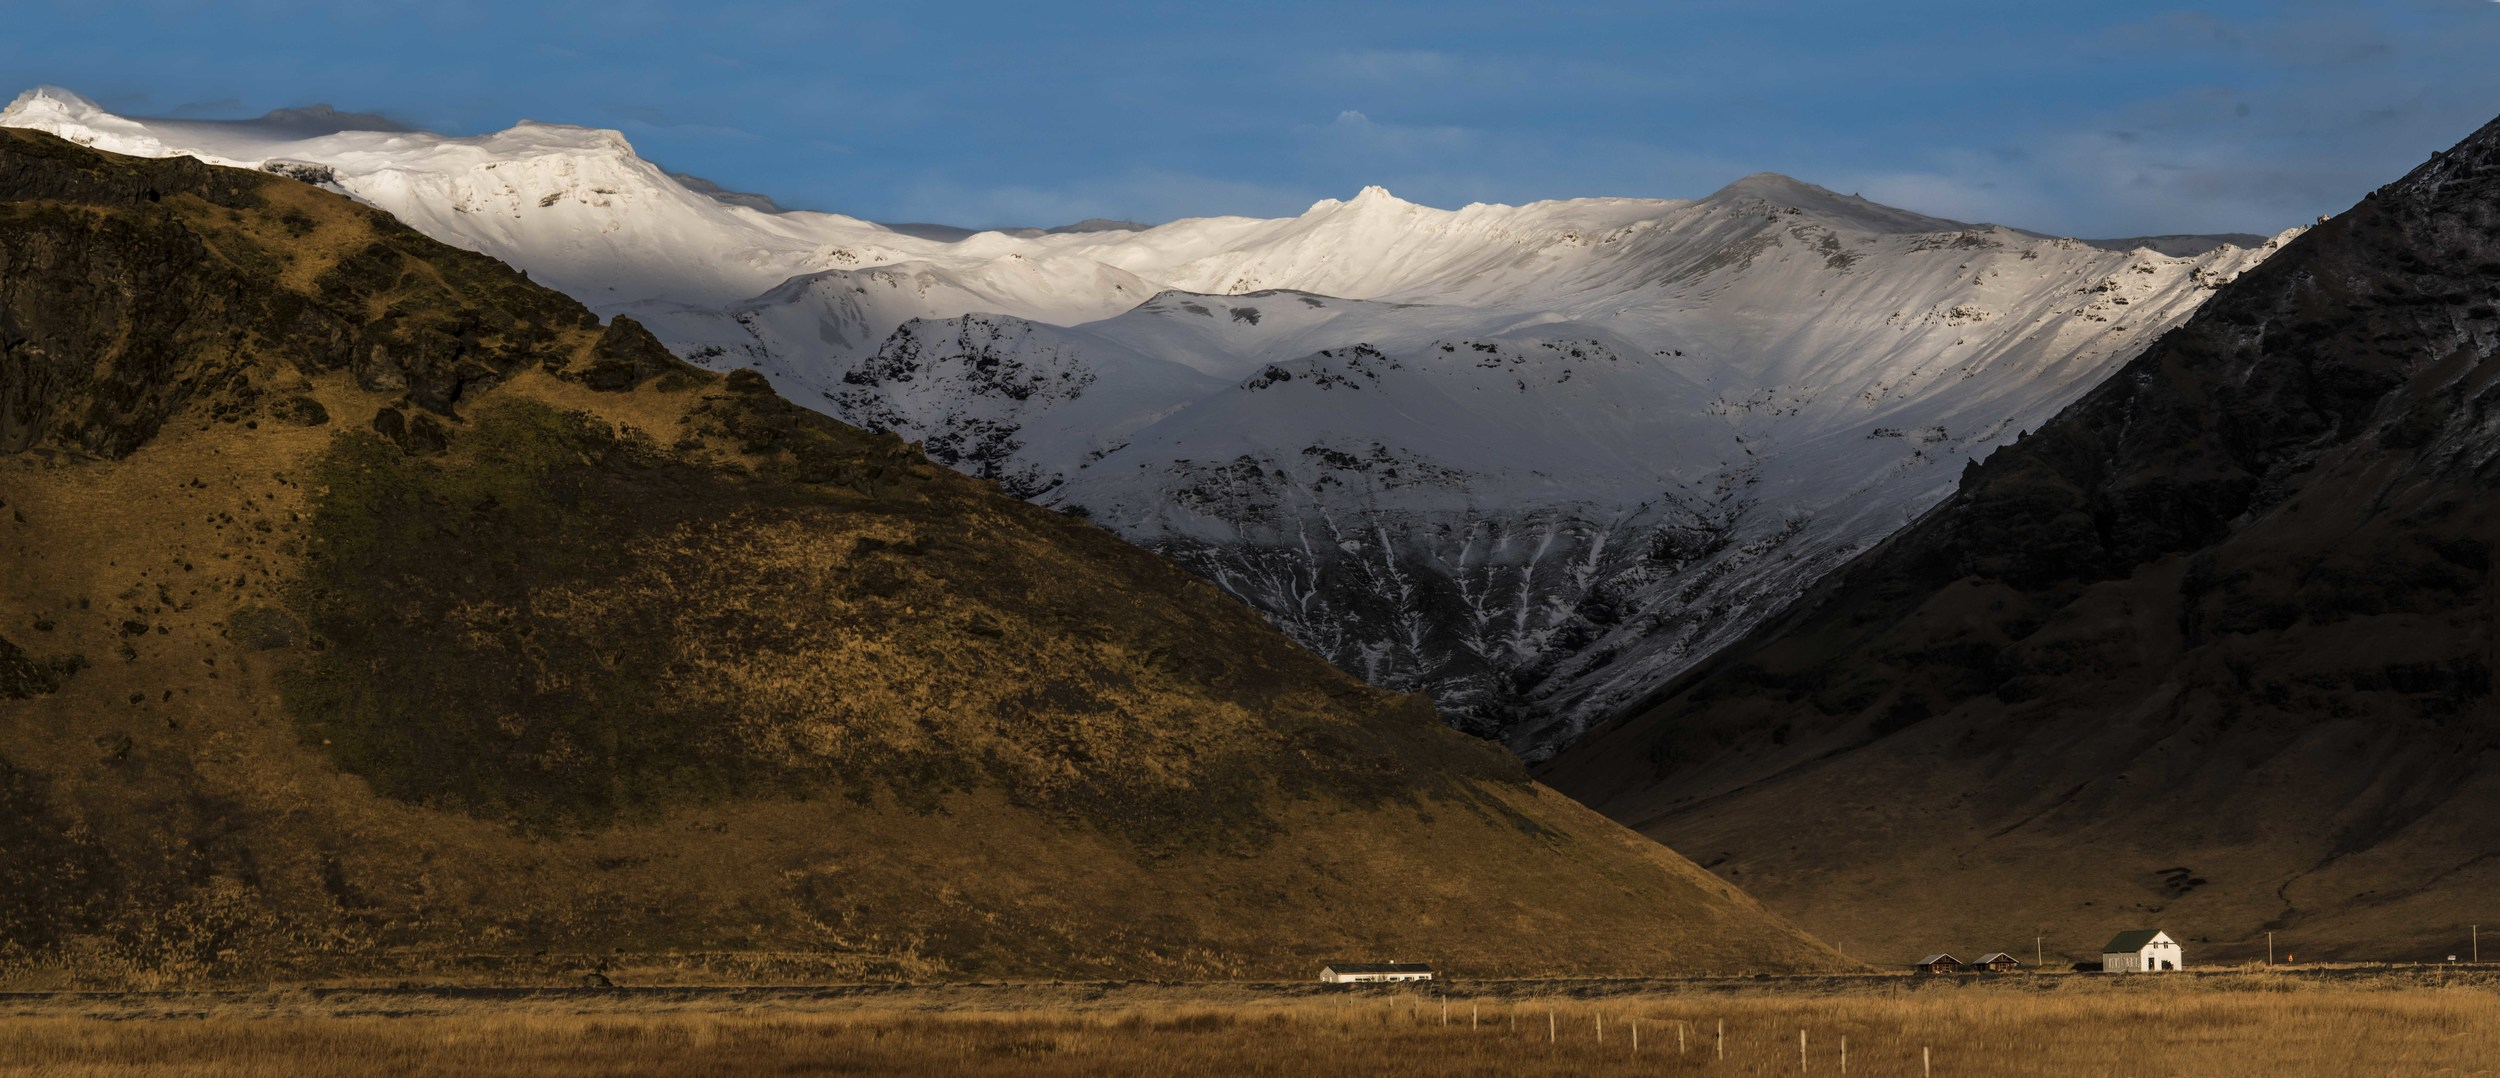 Icelandic Landscape, Mountains and Farmhouses